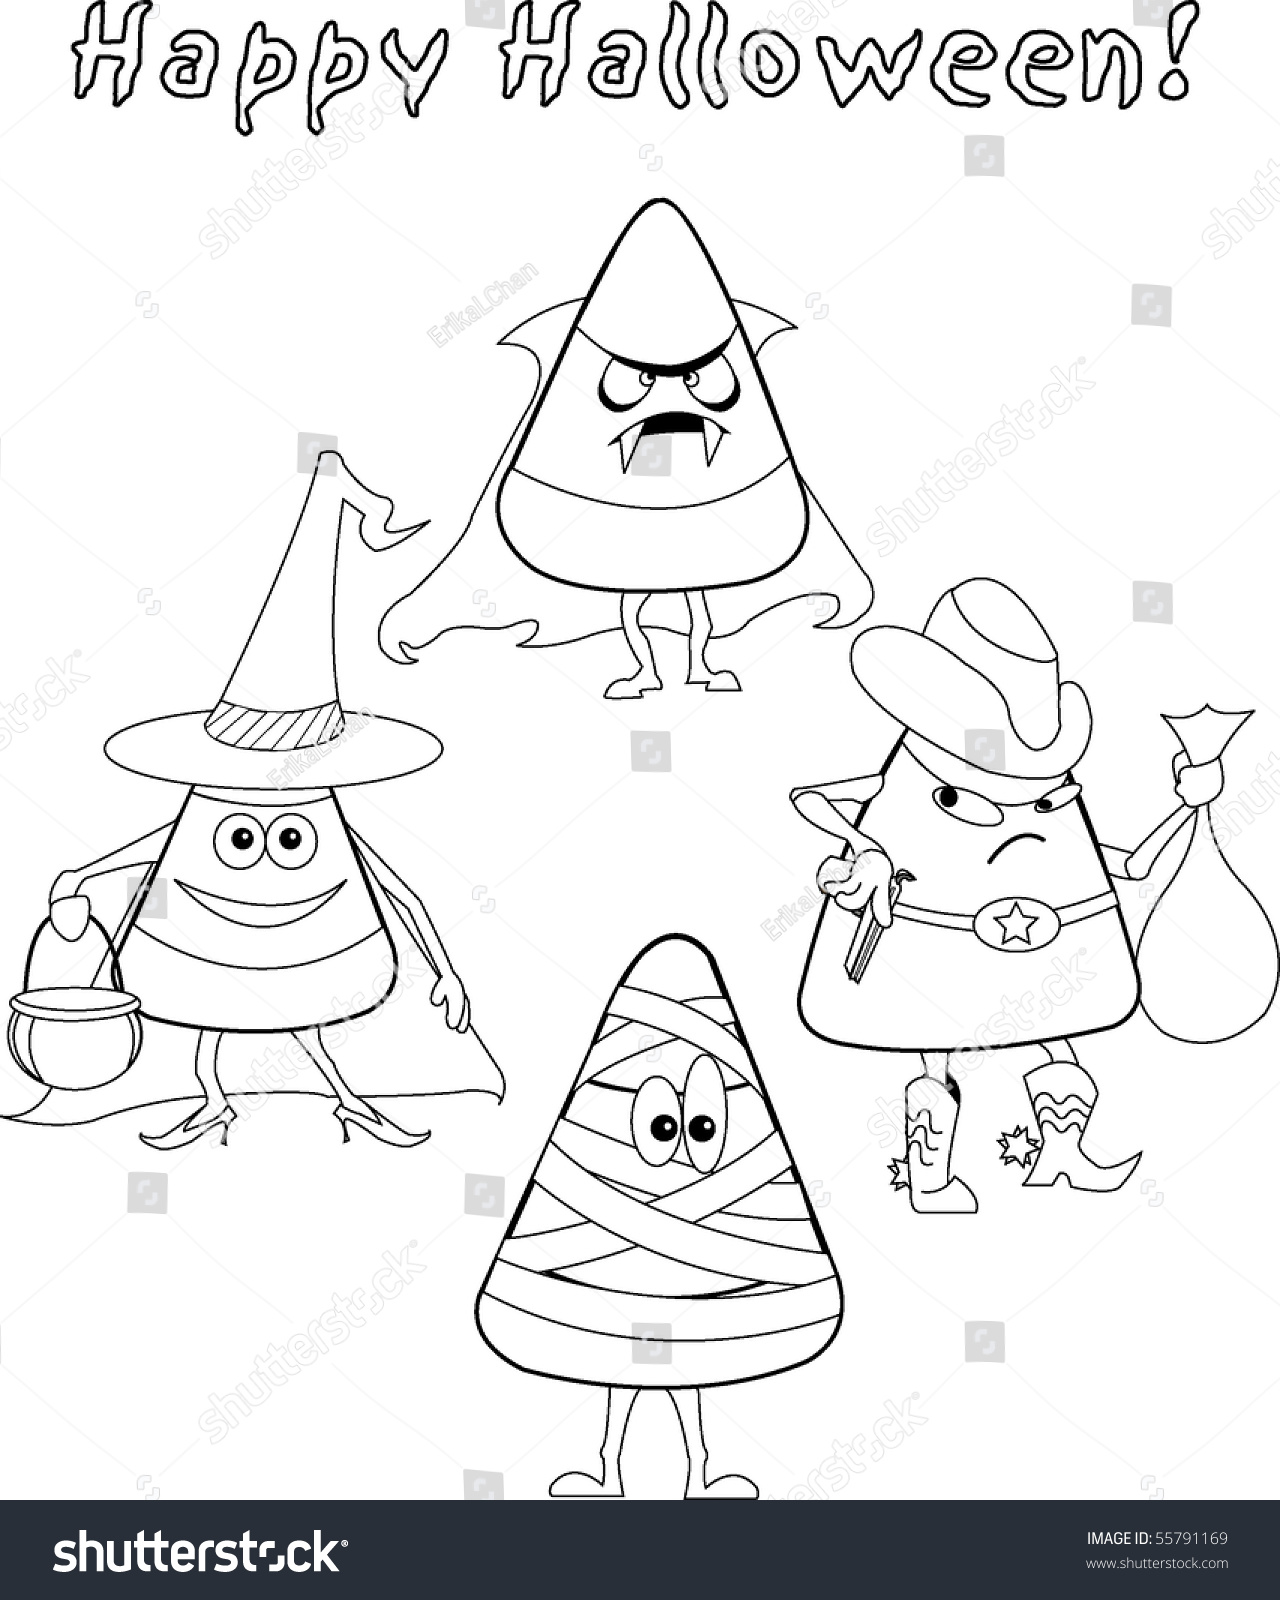 Black And White Kids Halloween Candy Corn Coloring Sheet ...